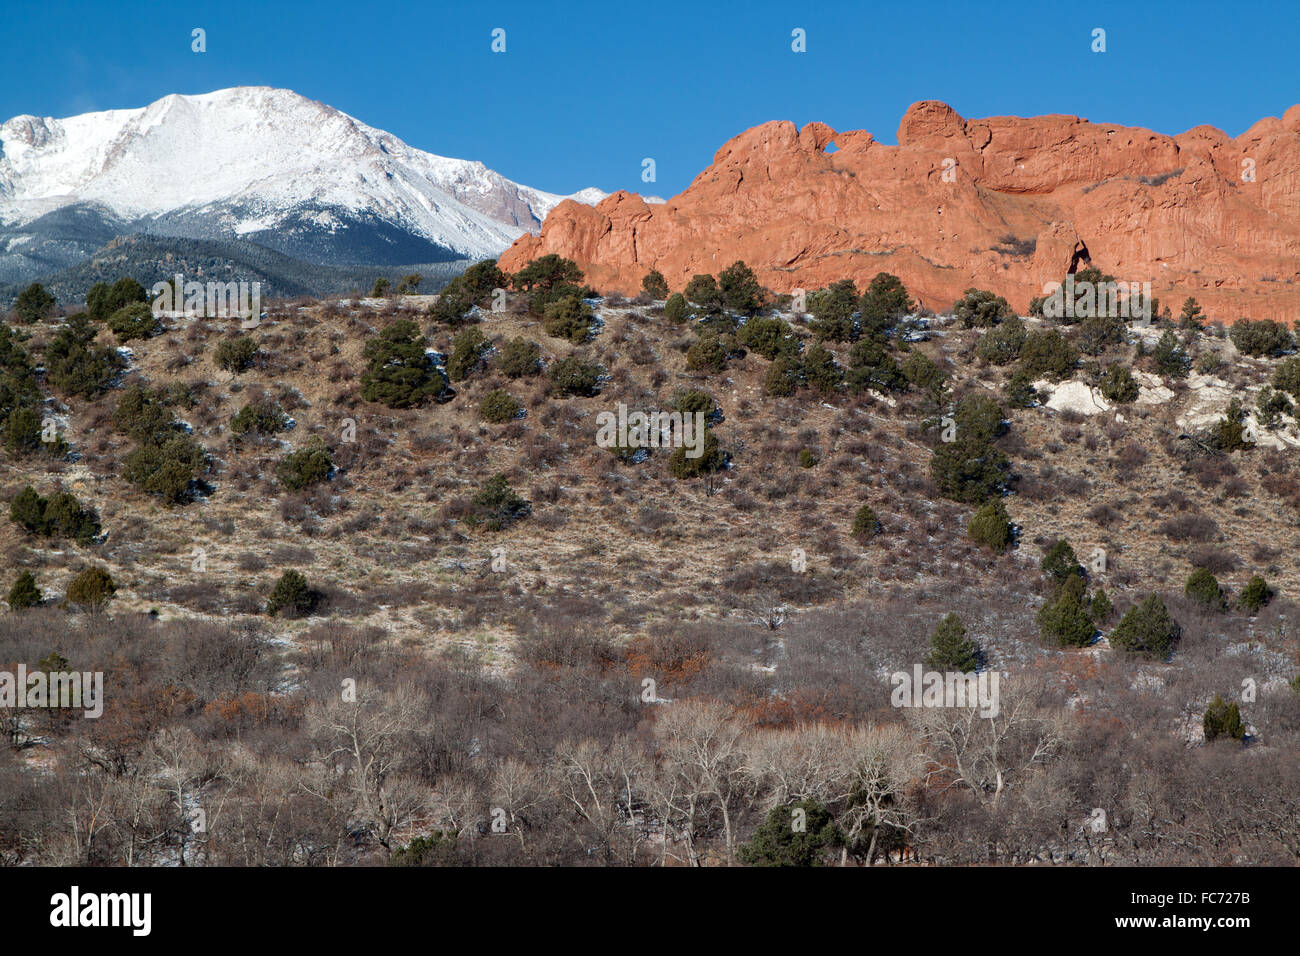 The Kissing Camels formation in Garden of the Gods park and Pikes Peak, early spring - Stock Image